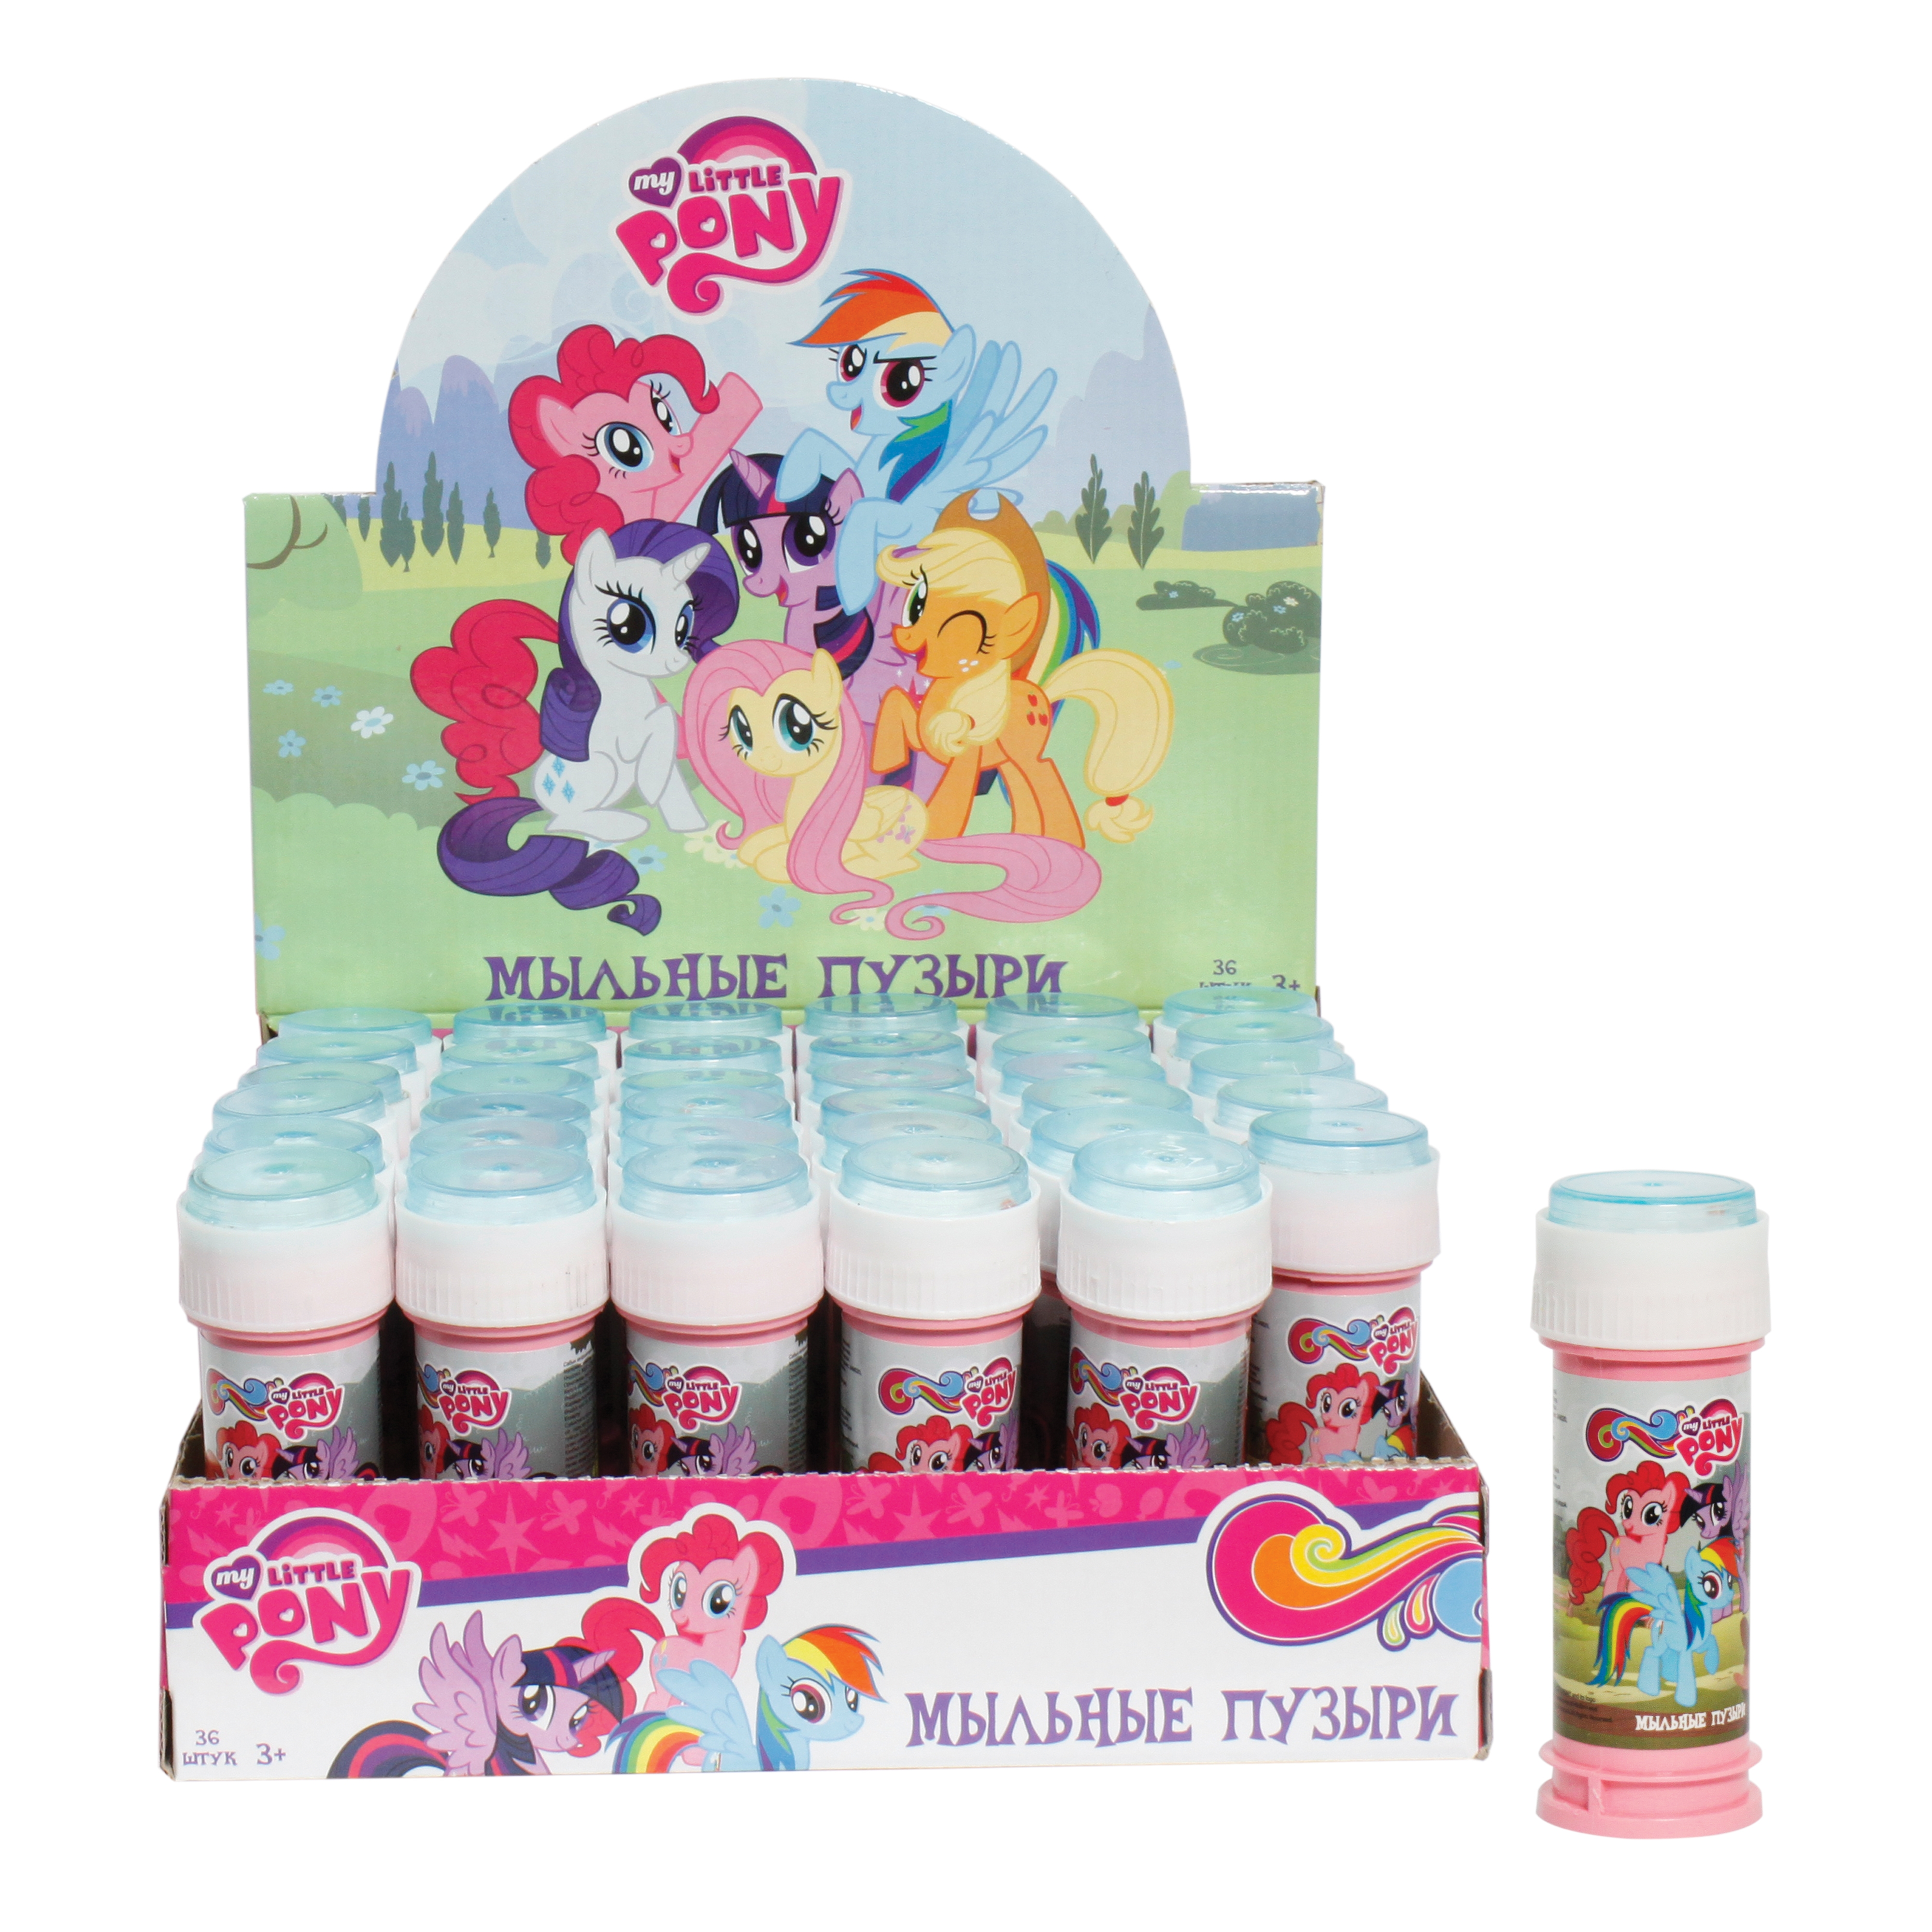 My Little Pony 1toy My Little Pony 50 мл. my little pony 1toy мыльные пузыри 1тоу my little pony